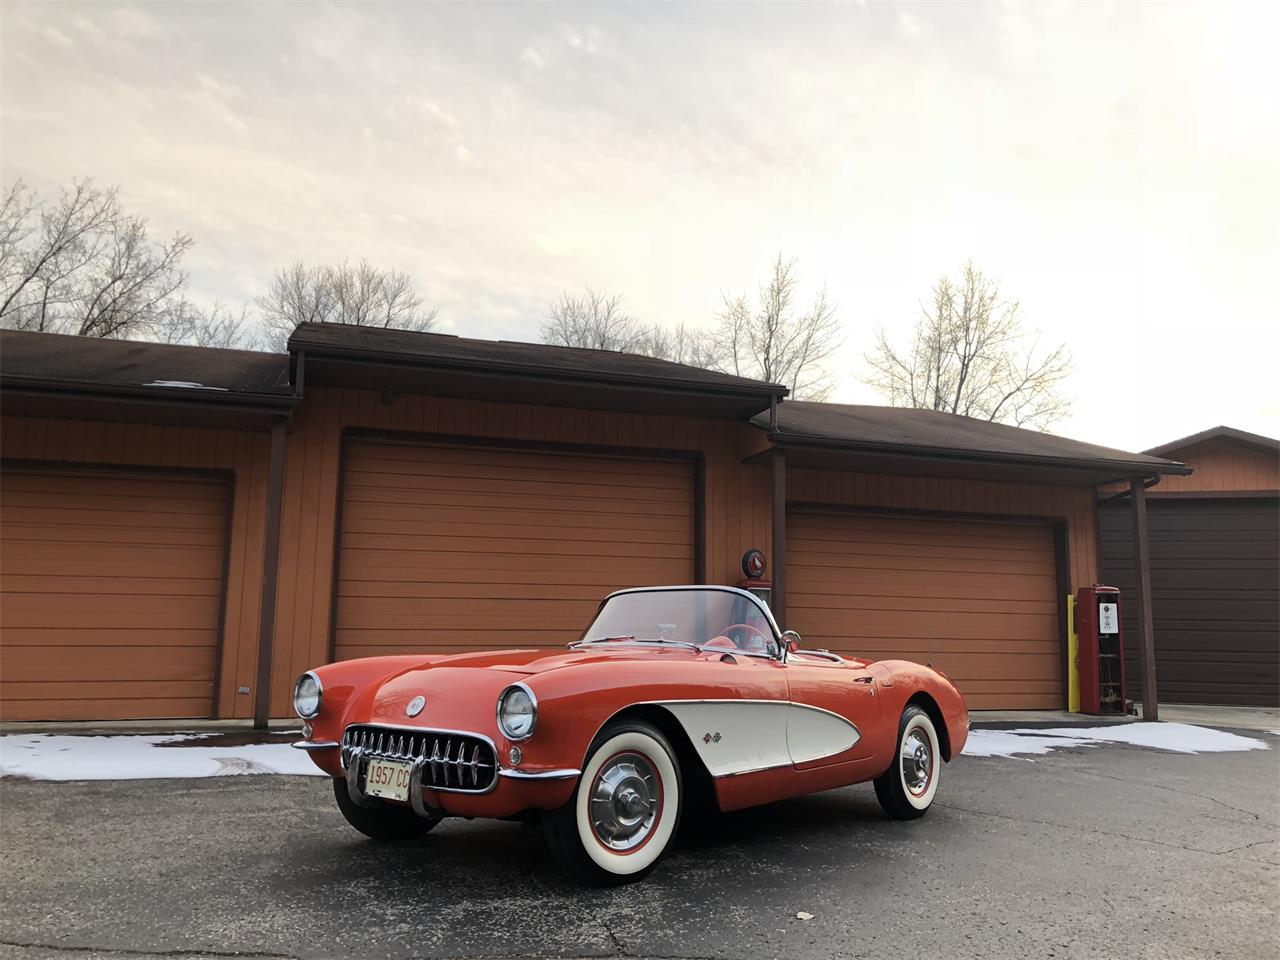 Large Picture of Classic '57 Chevrolet Corvette Auction Vehicle Offered by Earlywine Auctions - MYHK